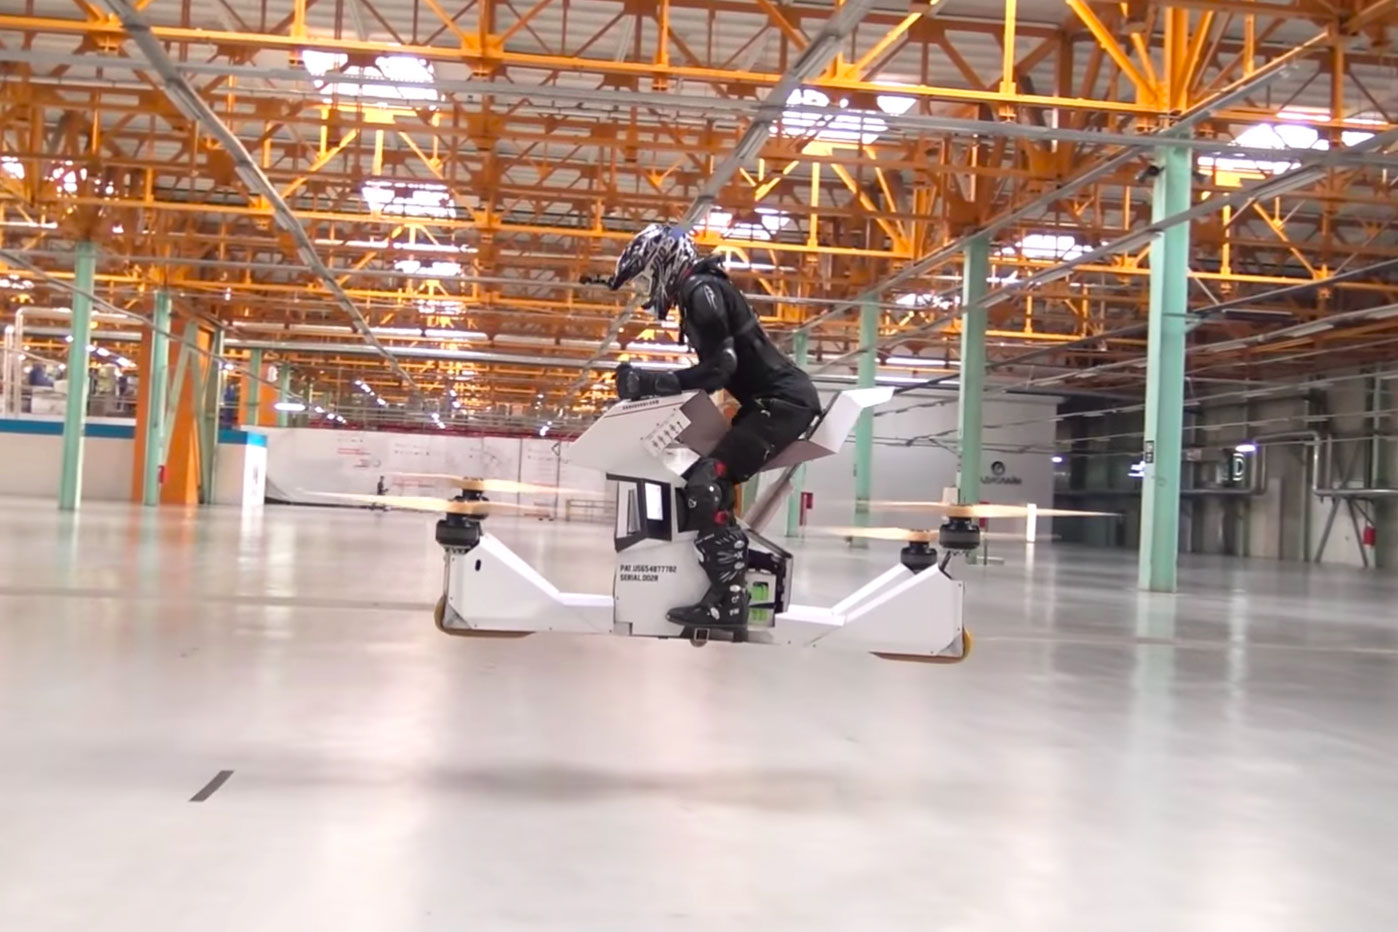 Piloted Hoverbike Redefines Dangerous